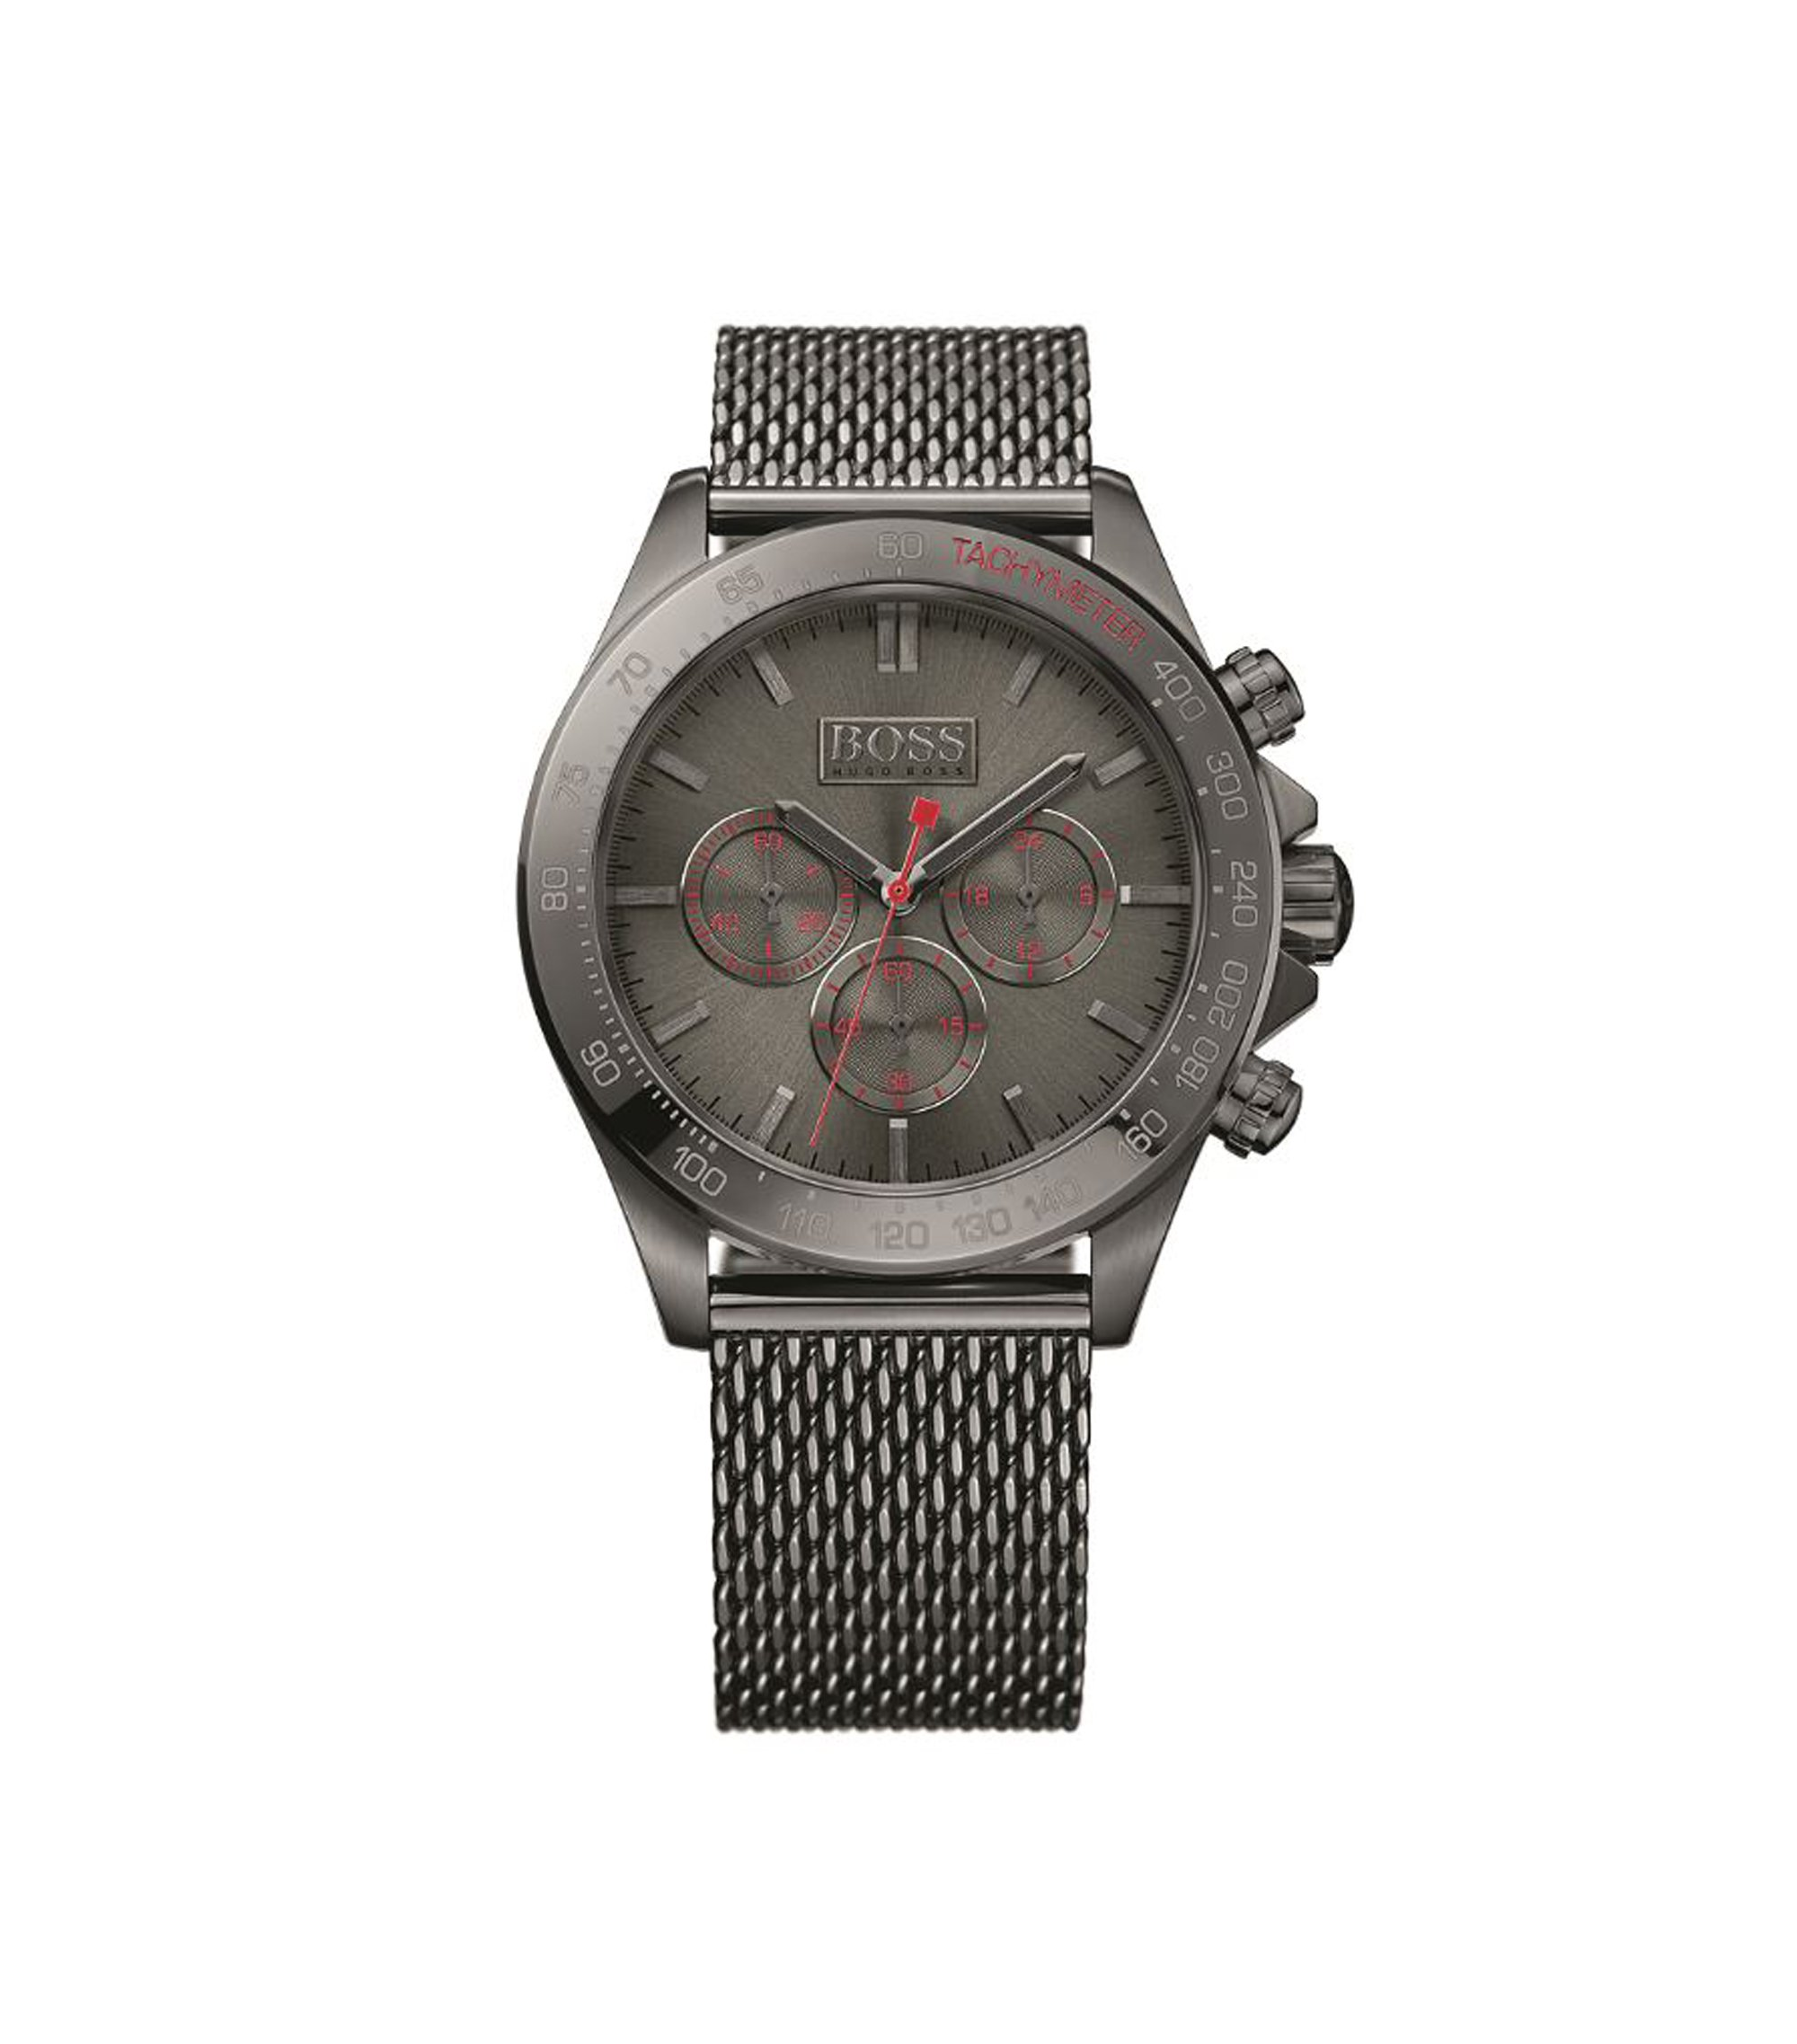 Ikon, Stainless Steel Chronograph Watch | 1513443, Assorted-Pre-Pack